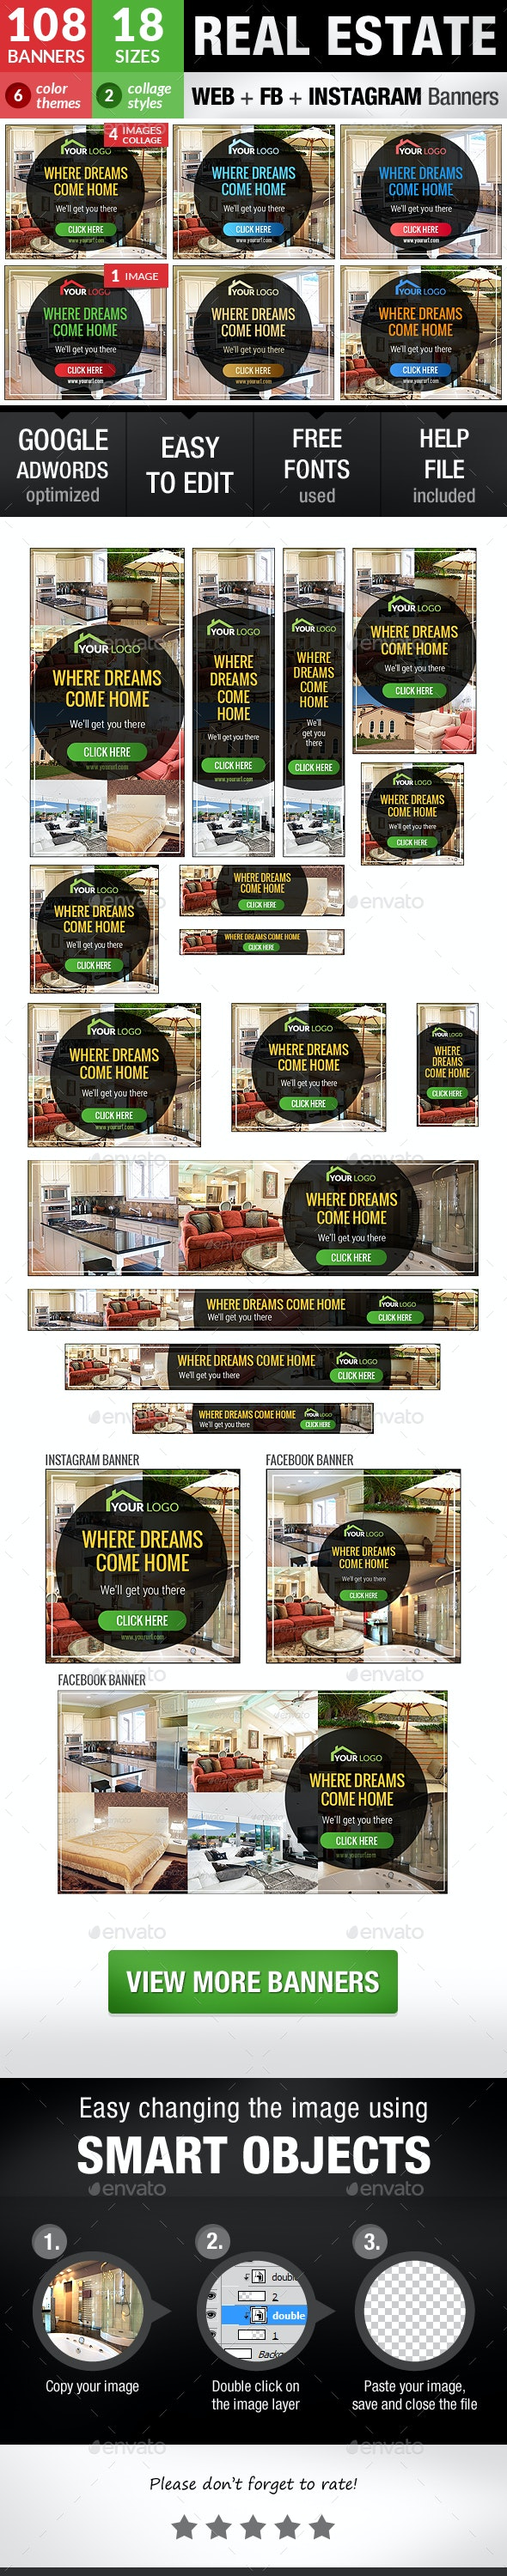 Real Estate - Banners & Ads Web Elements